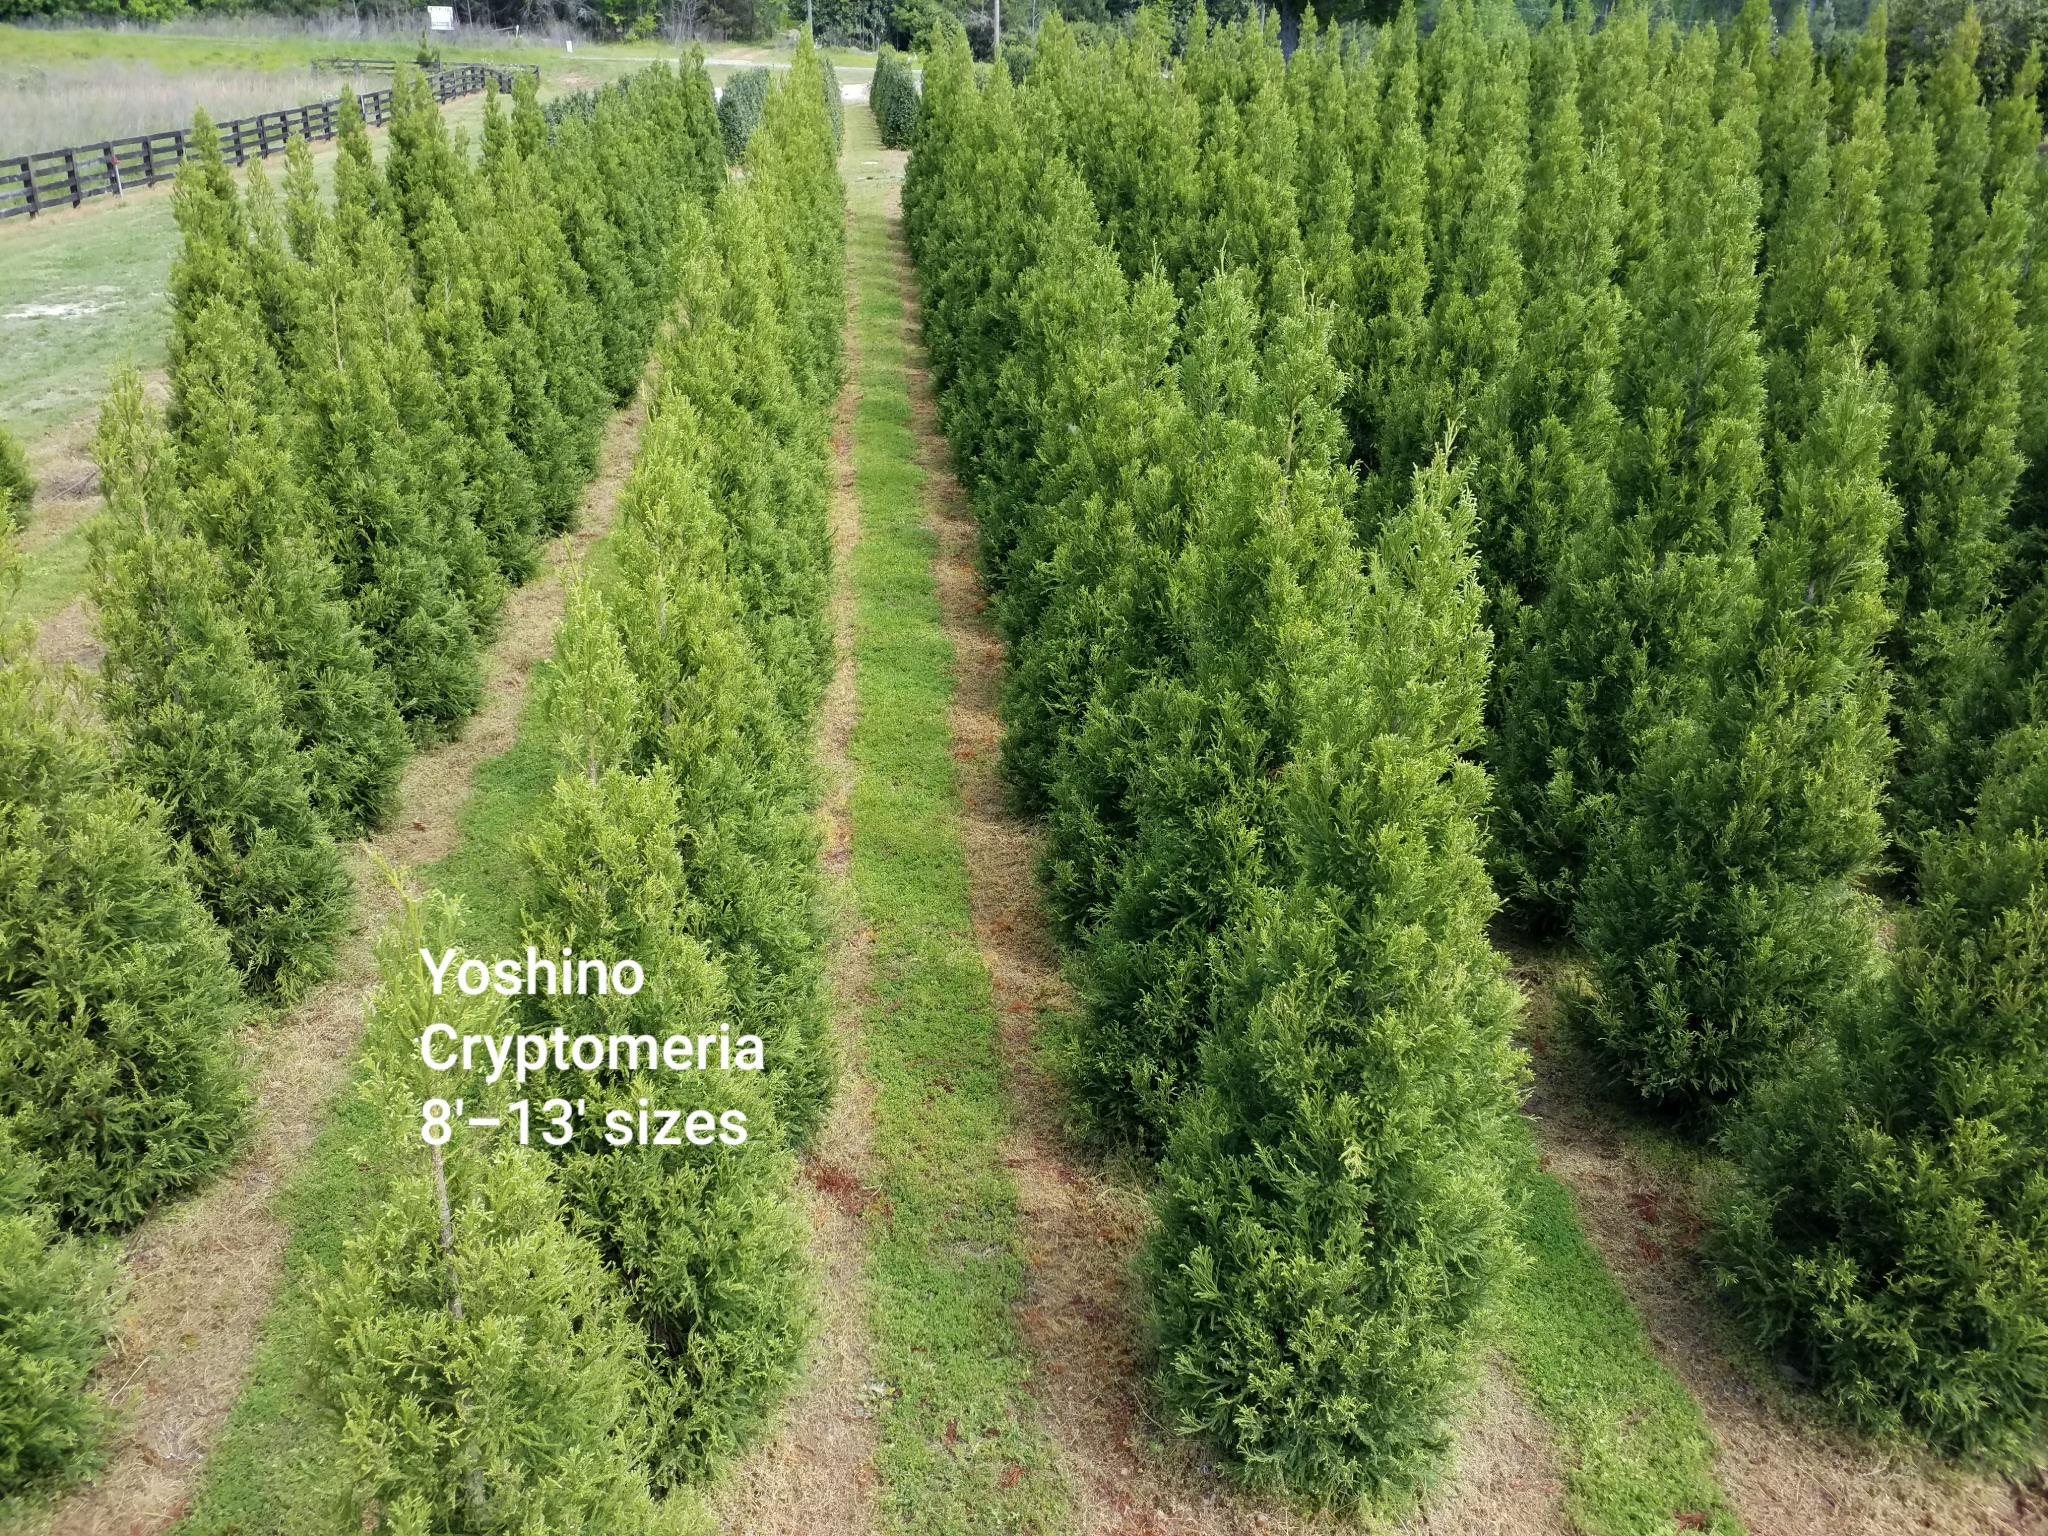 Yoshino Cryptomeria 8-13 ft 2020 0429